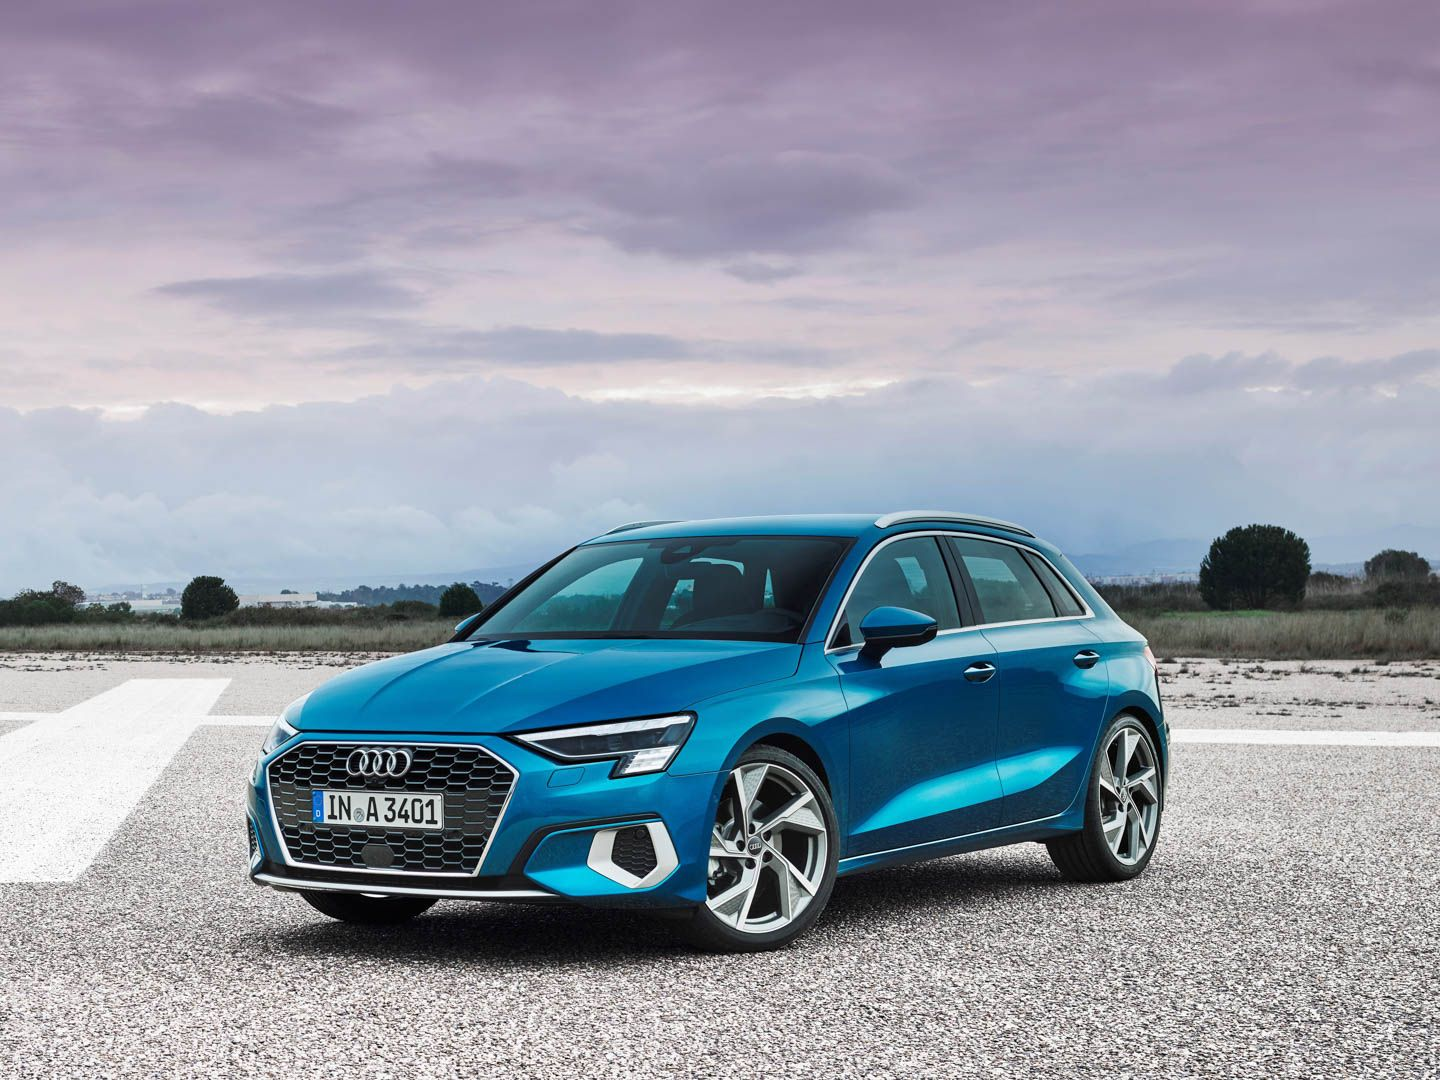 Audi Rs3 Sportback Rendered Probably Accurate In 2020 Audi A3 Sportback Audi Rs3 Audi A3